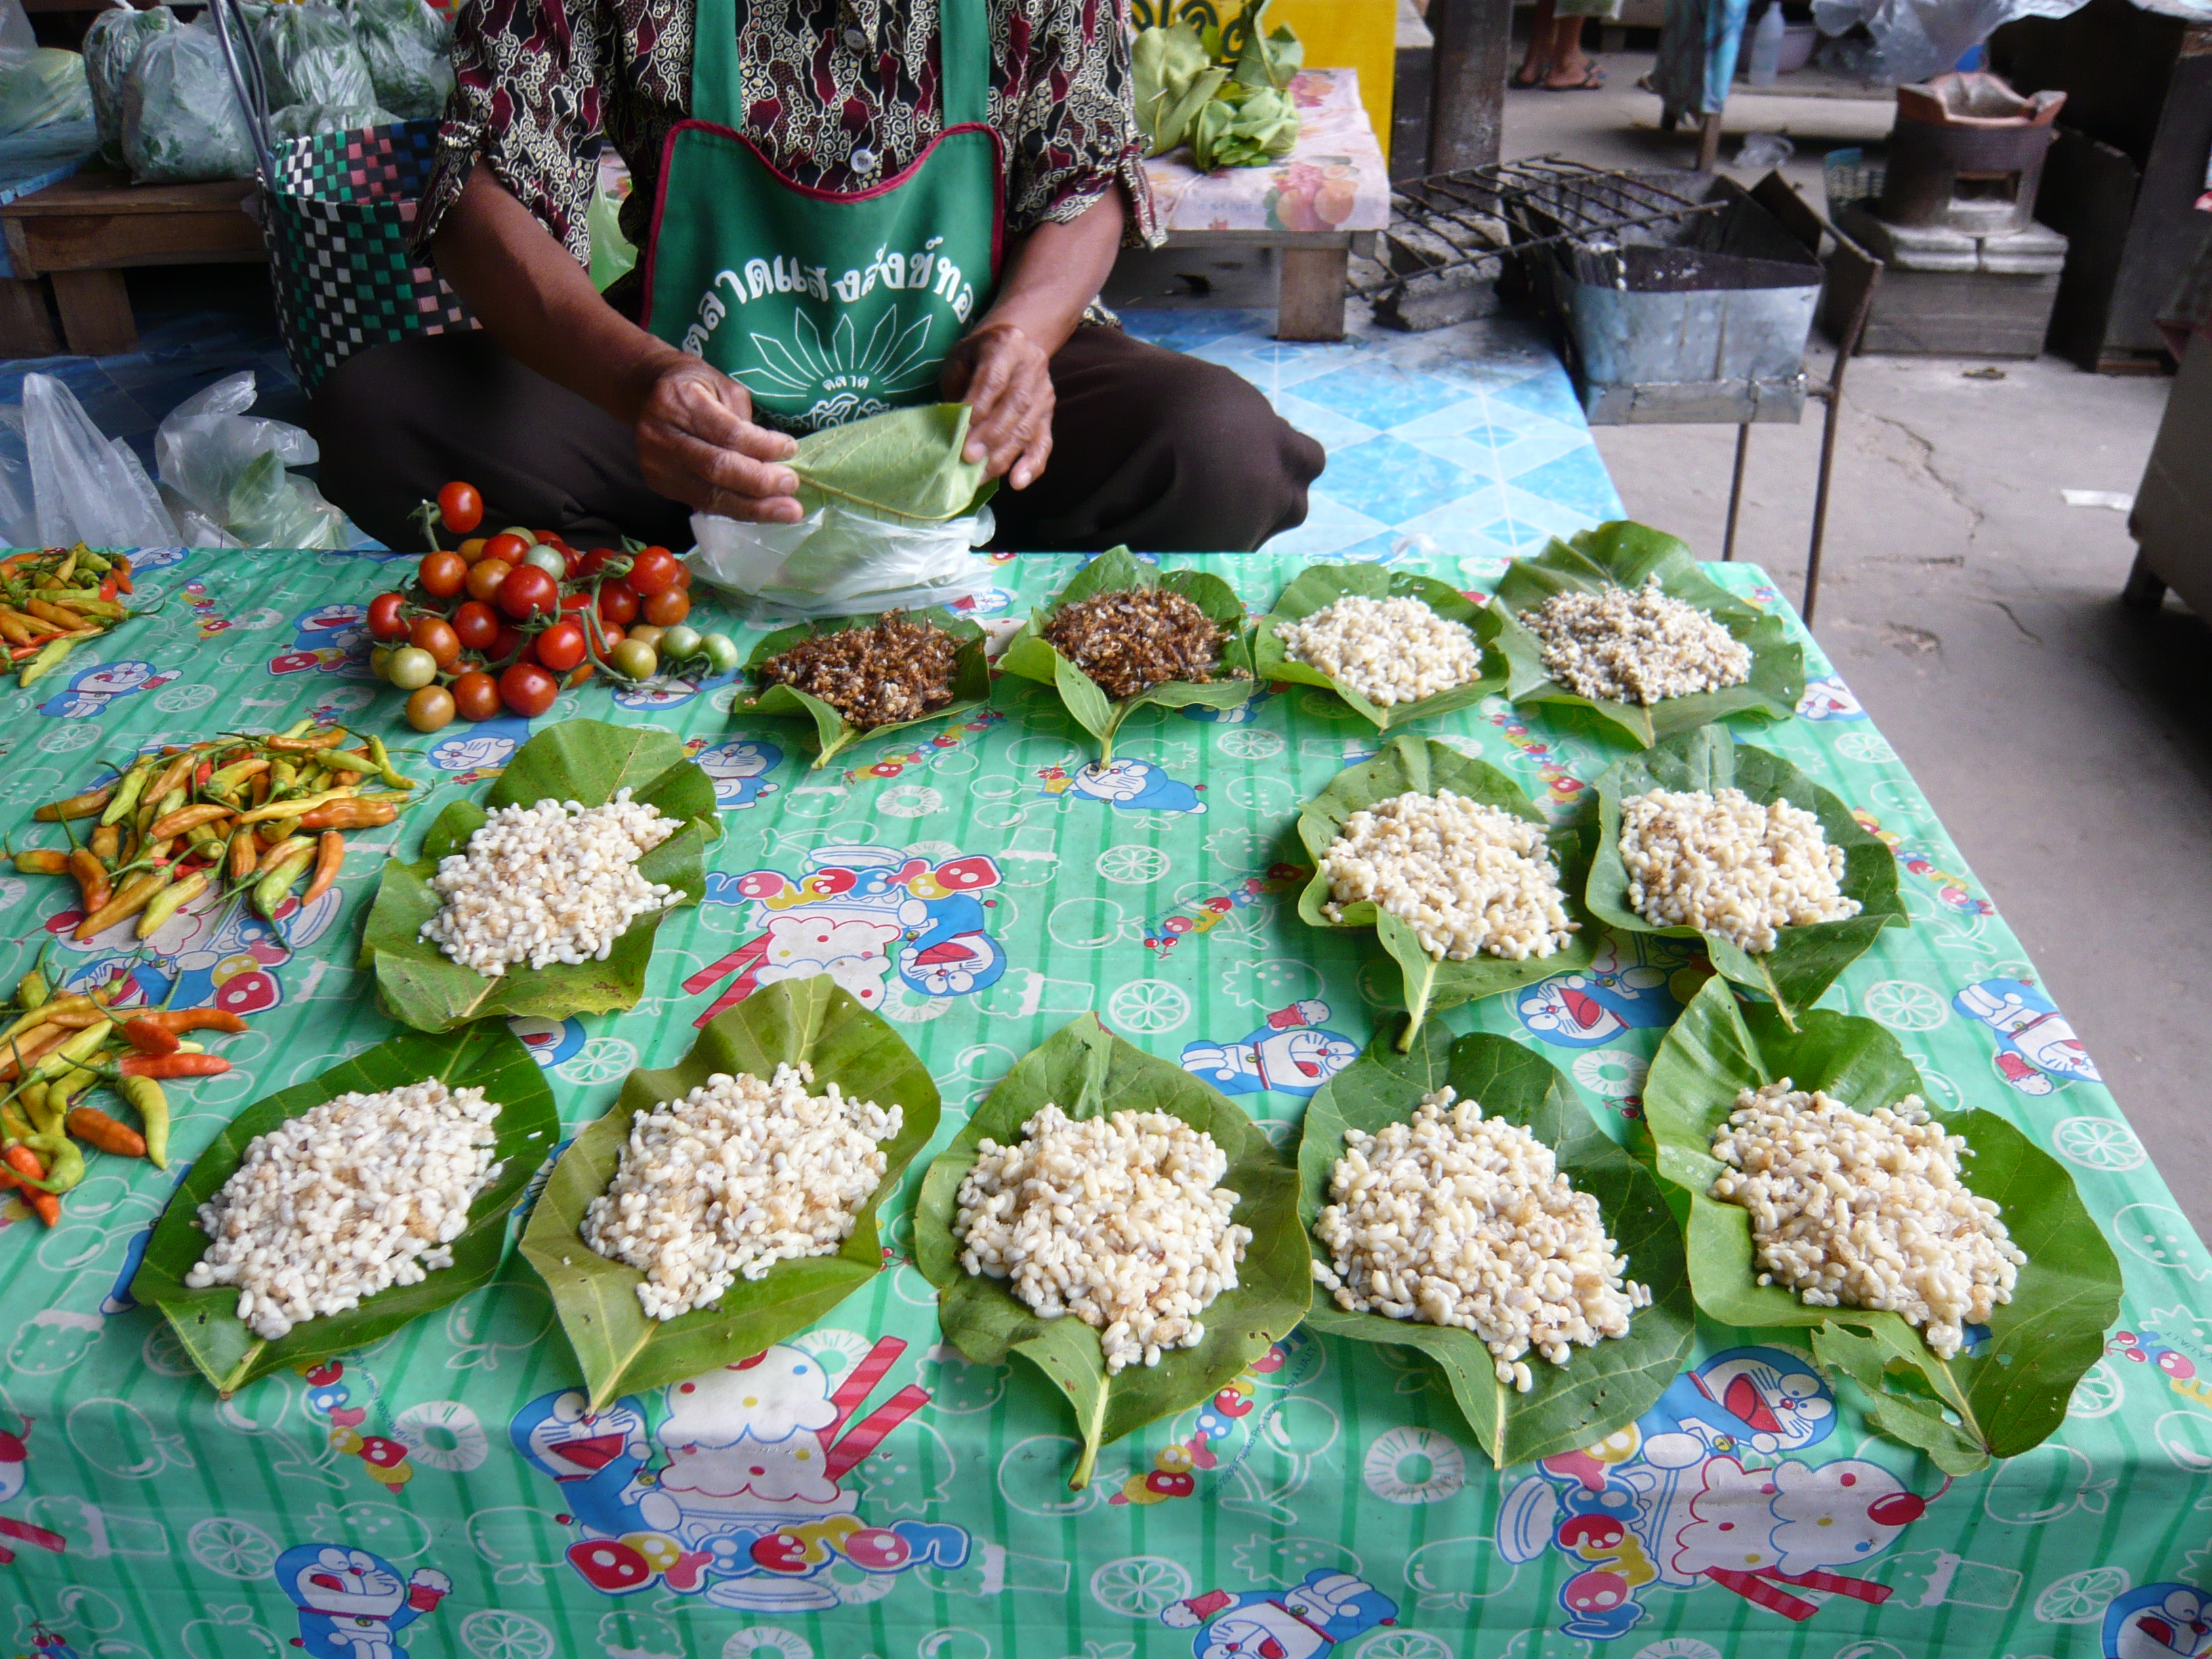 Ant larvae for sale in Isaan, Thailand